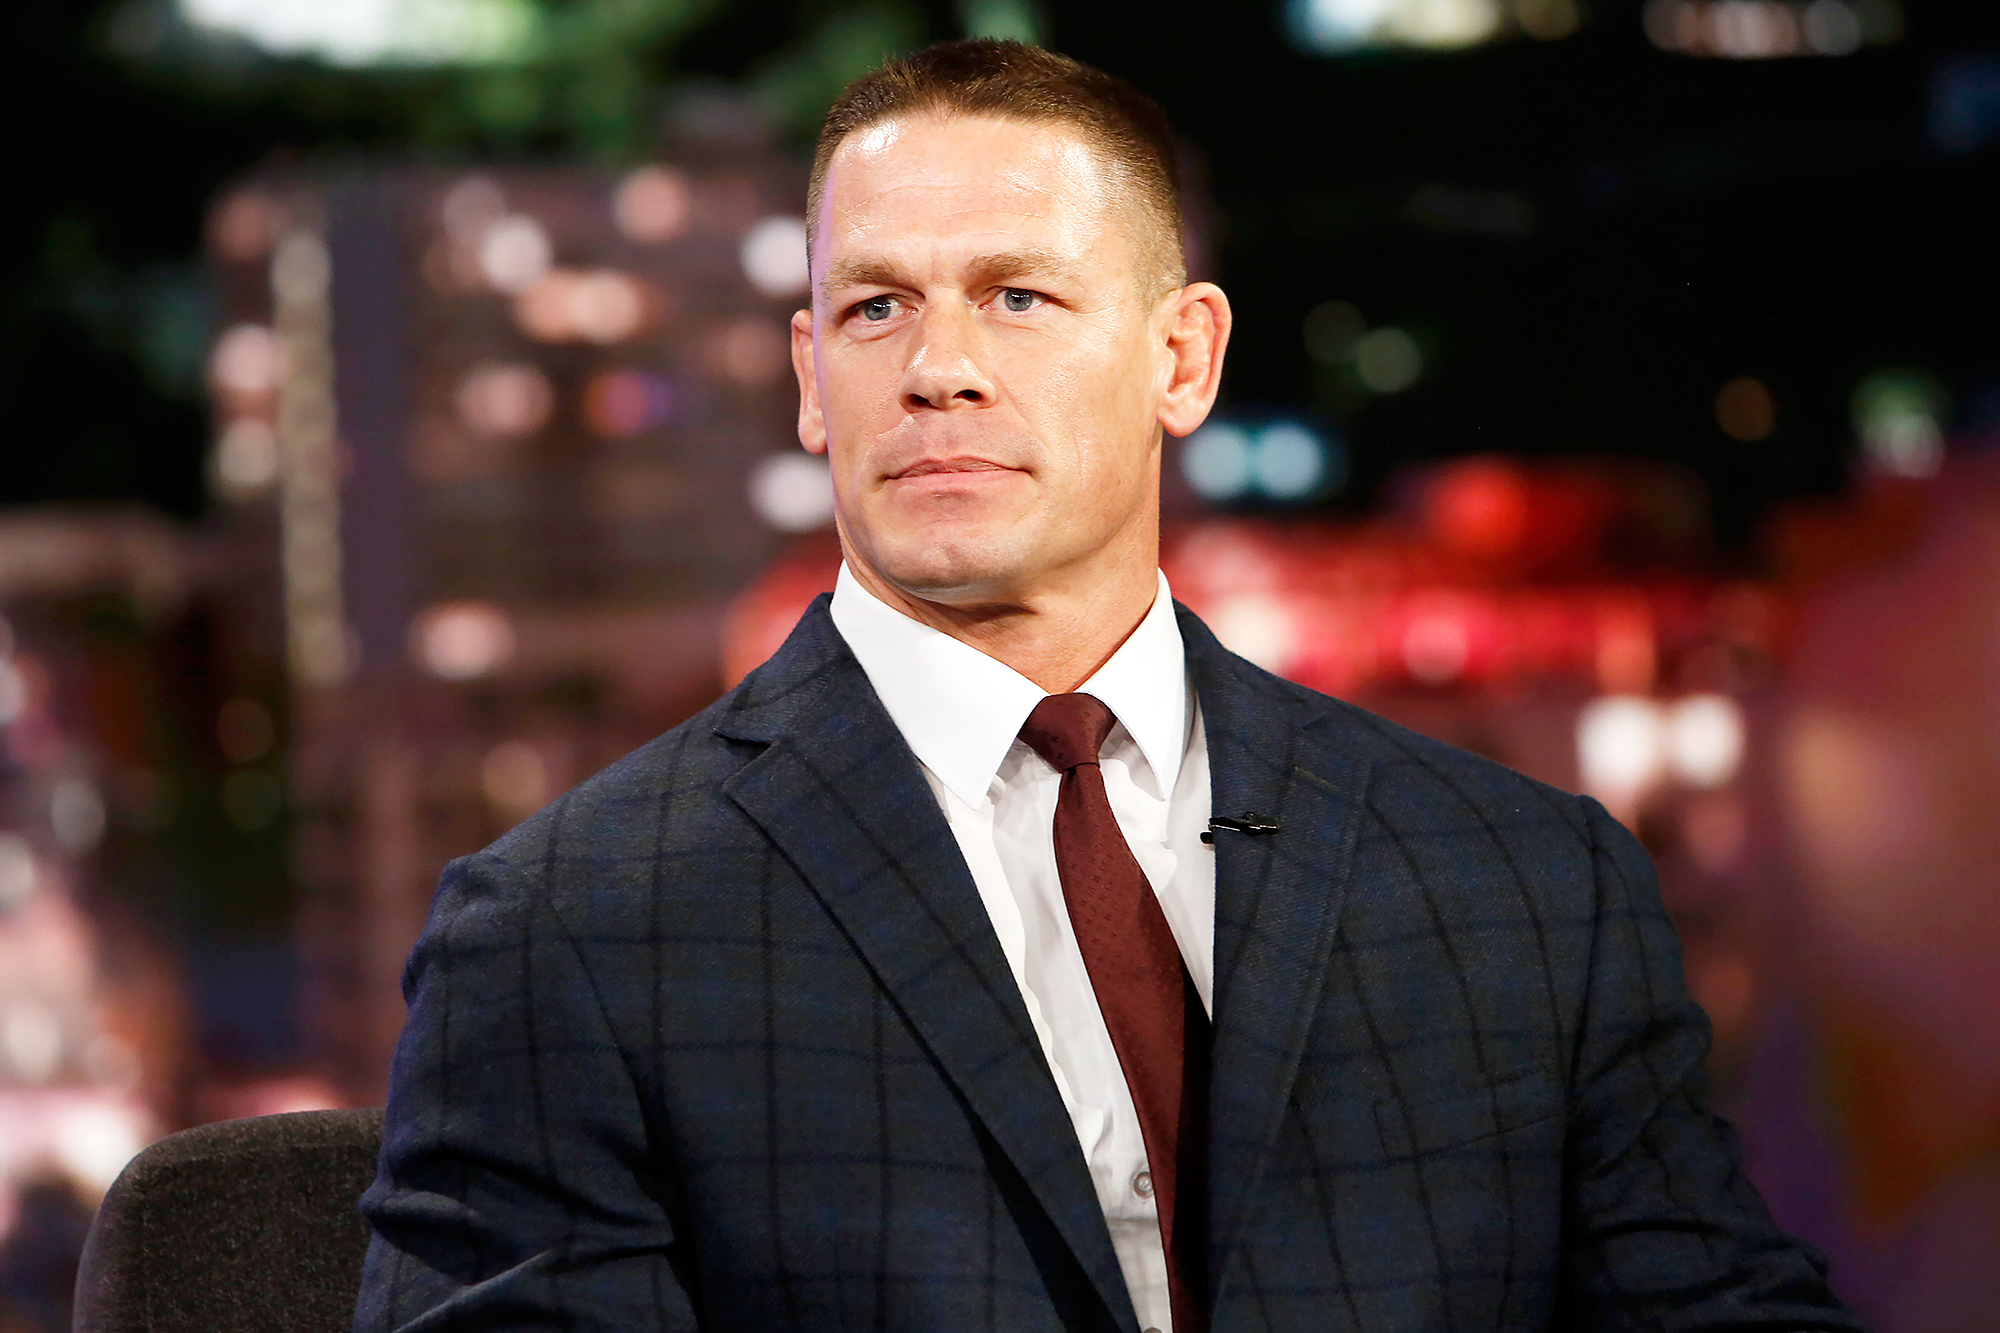 John Cena Tweets About Loss after Split